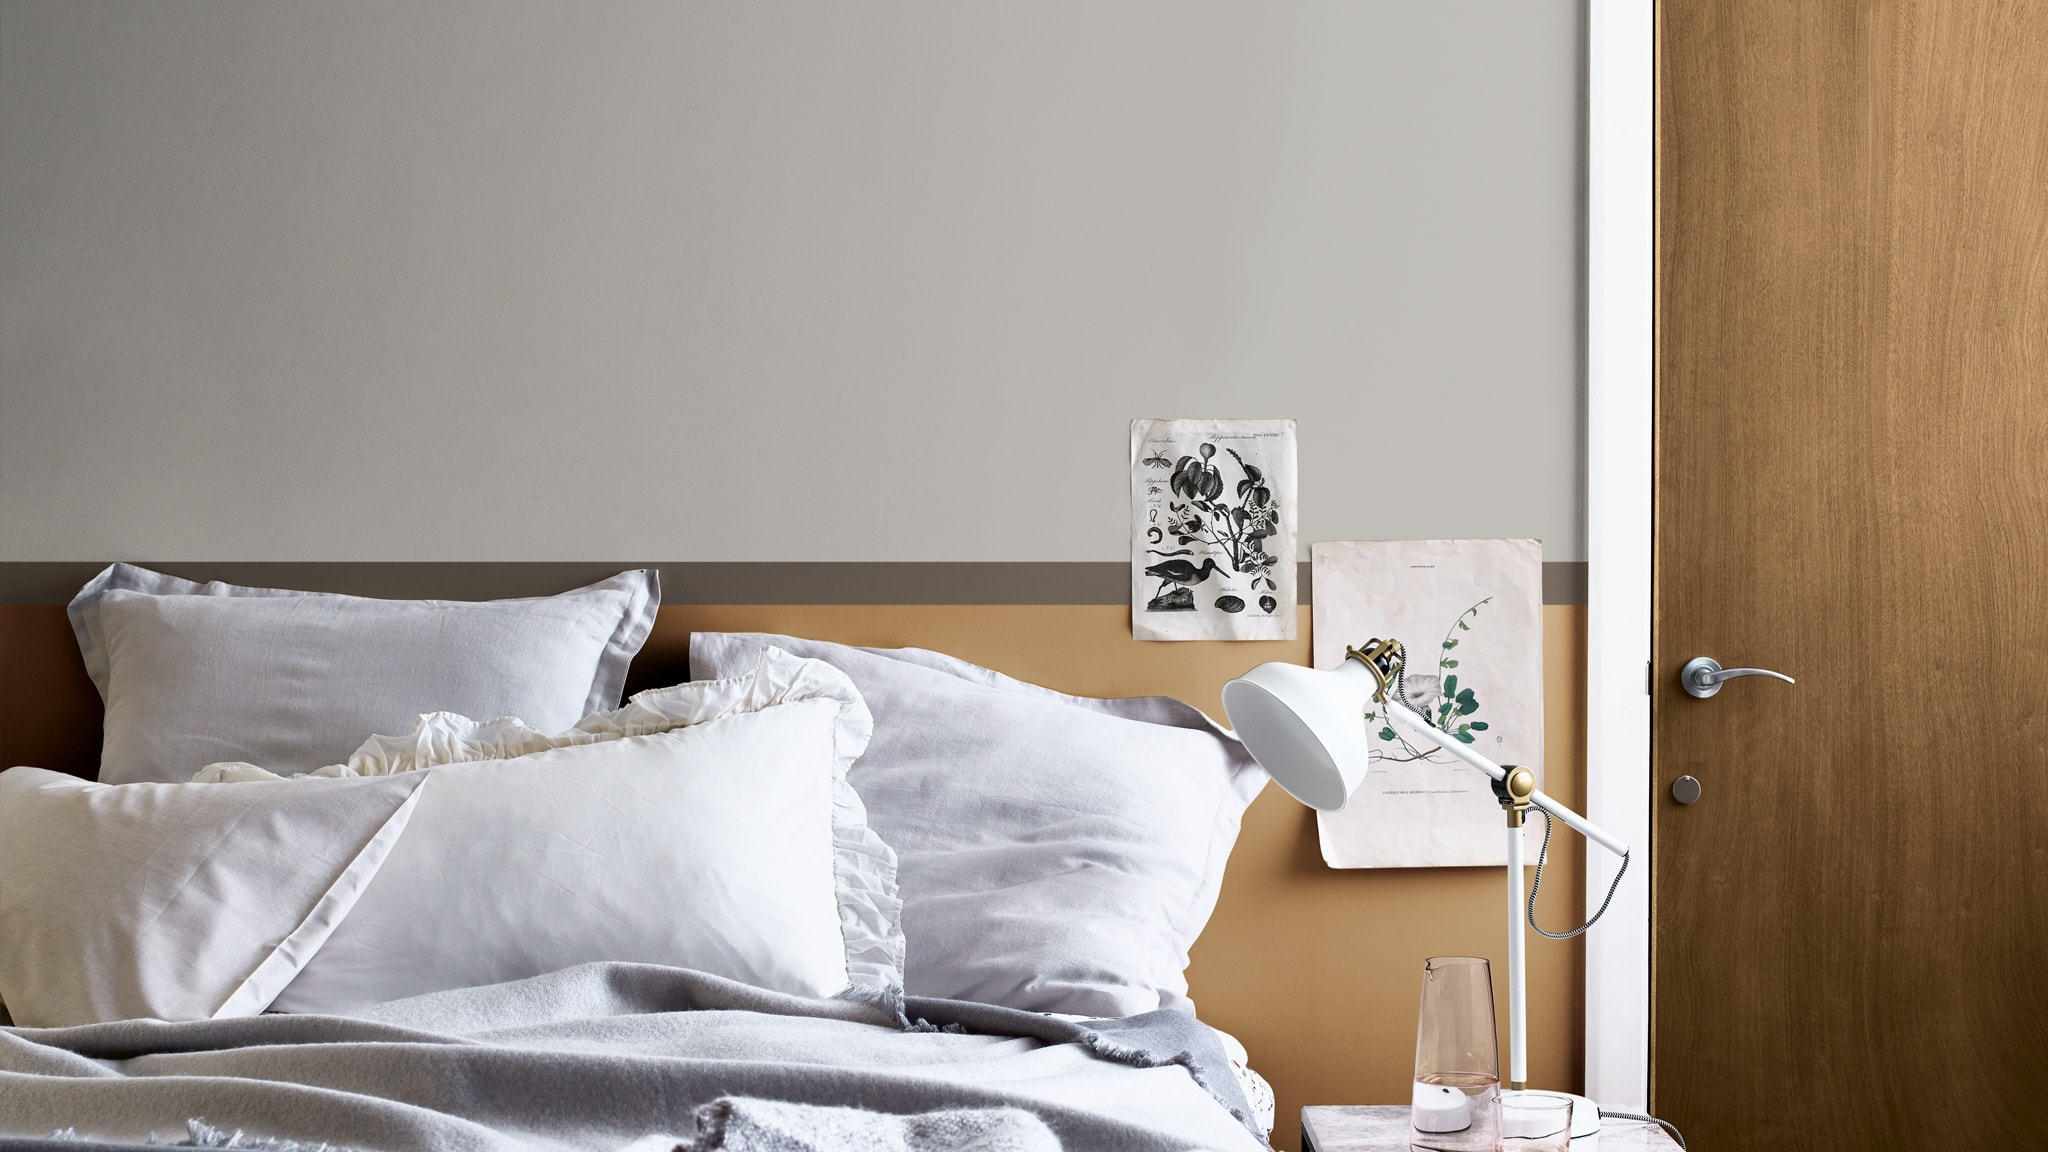 Deco-Paints-Colour-Futures-Colour-of-the-Year-2019-A-place-to-dream-Bedroom-Inspiration-52